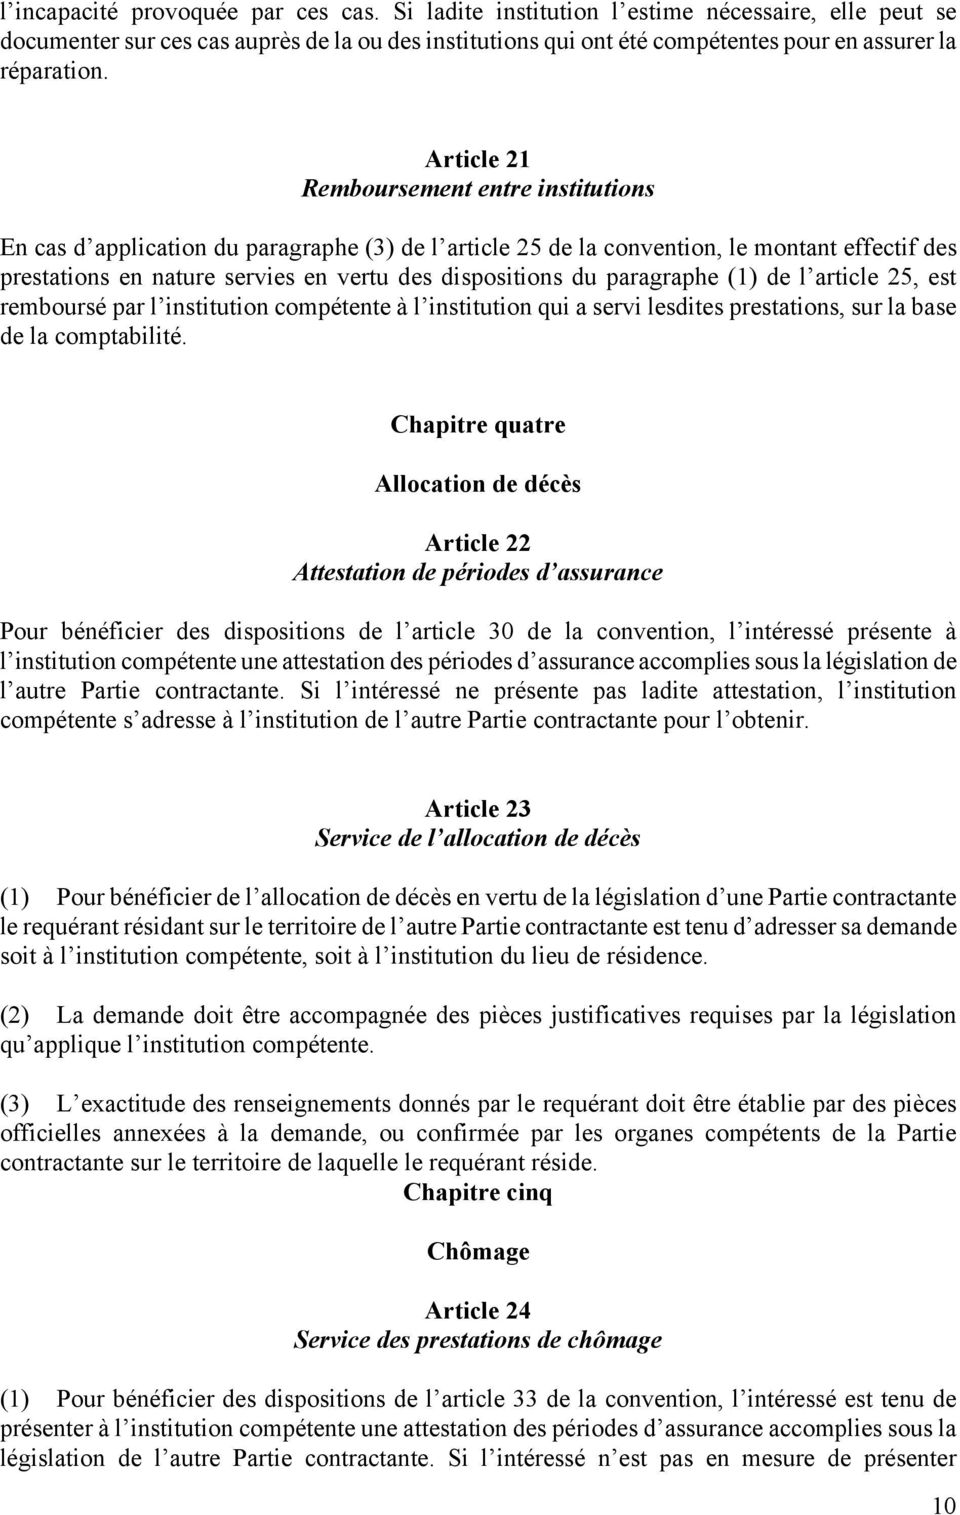 Article 21 Remboursement entre institutions En cas d application du paragraphe (3) de l article 25 de la convention, le montant effectif des prestations en nature servies en vertu des dispositions du